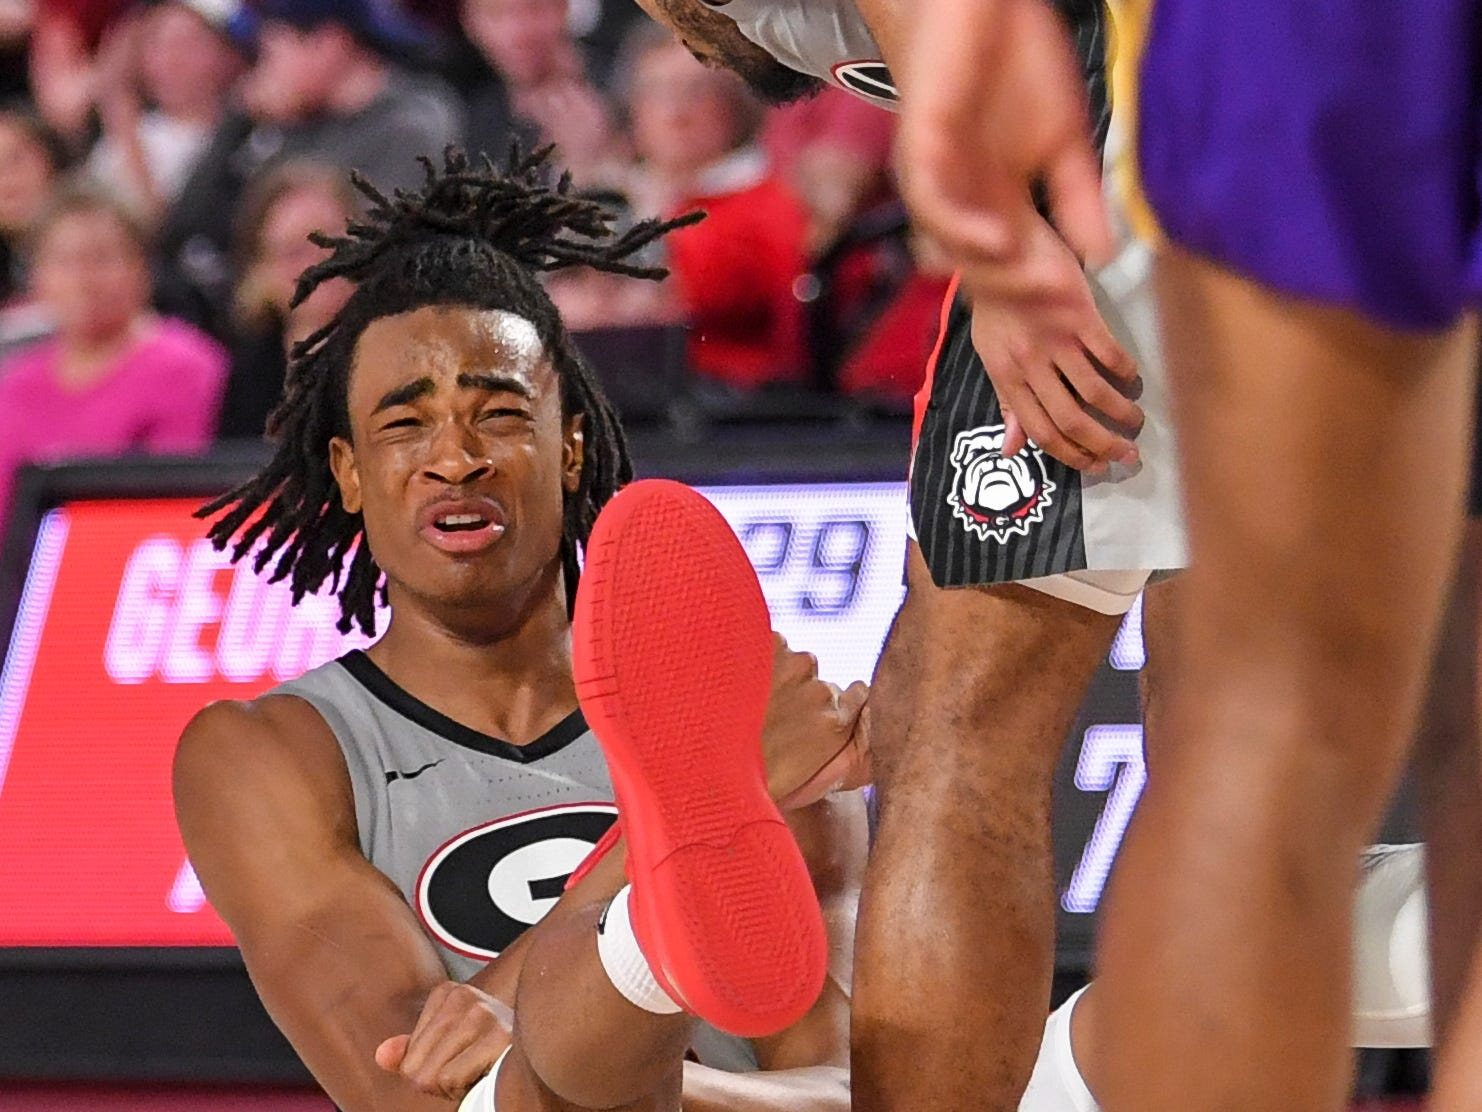 Feb 16, 2019; Athens, GA, USA; Georgia Bulldogs forward Nicolas Claxton (33) reacts after scoring and drawing a foul against the LSU Tigers during the second half at Stegeman Coliseum. Mandatory Credit: Dale Zanine-USA TODAY Sports